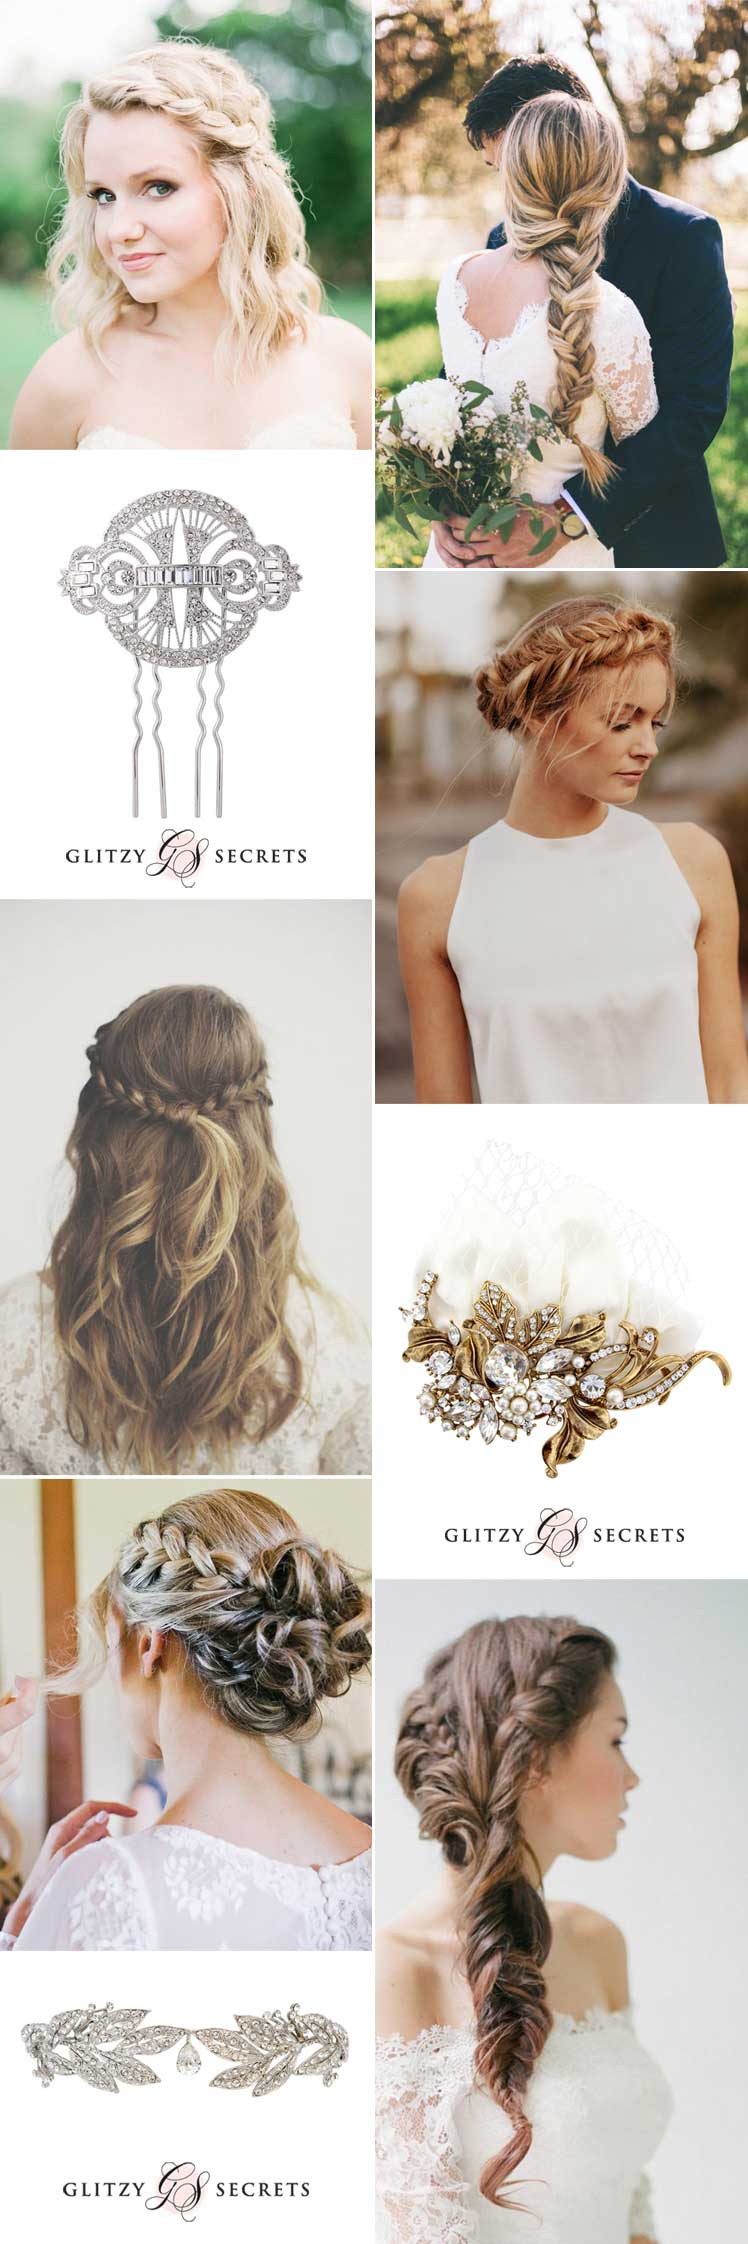 exquisite hair accesories for bridal braids